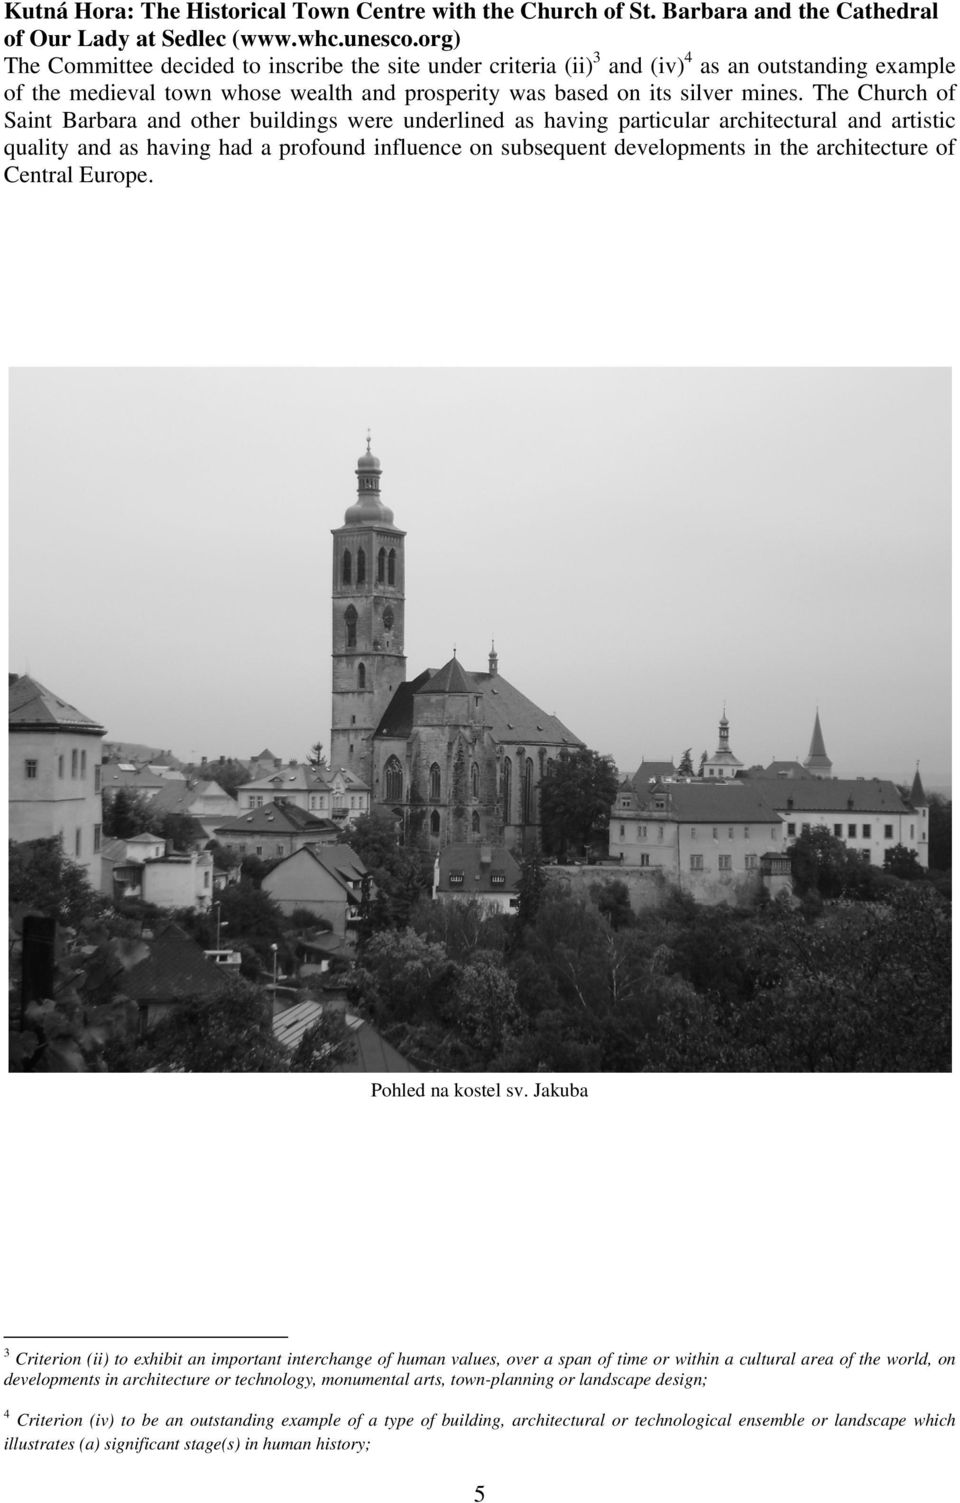 The Church of Saint Barbara and other buildings were underlined as having particular architectural and artistic quality and as having had a profound influence on subsequent developments in the